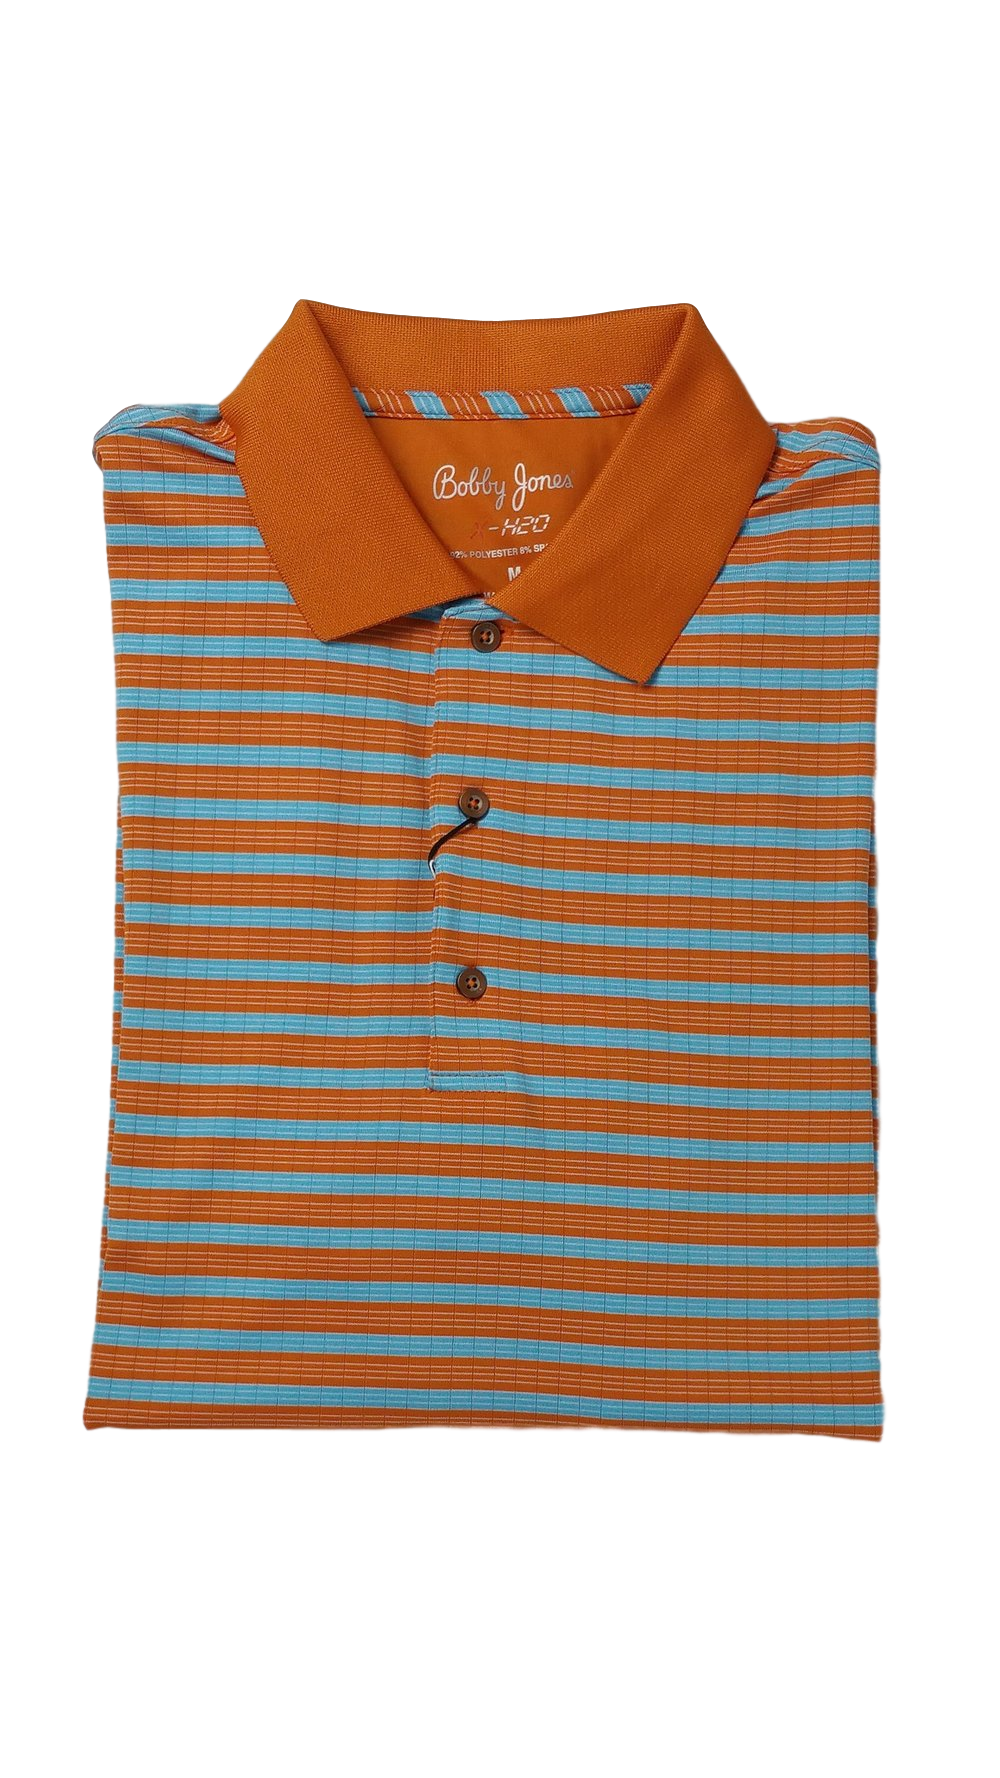 Bobby Jones Performance Orange and Blue Striped Polo